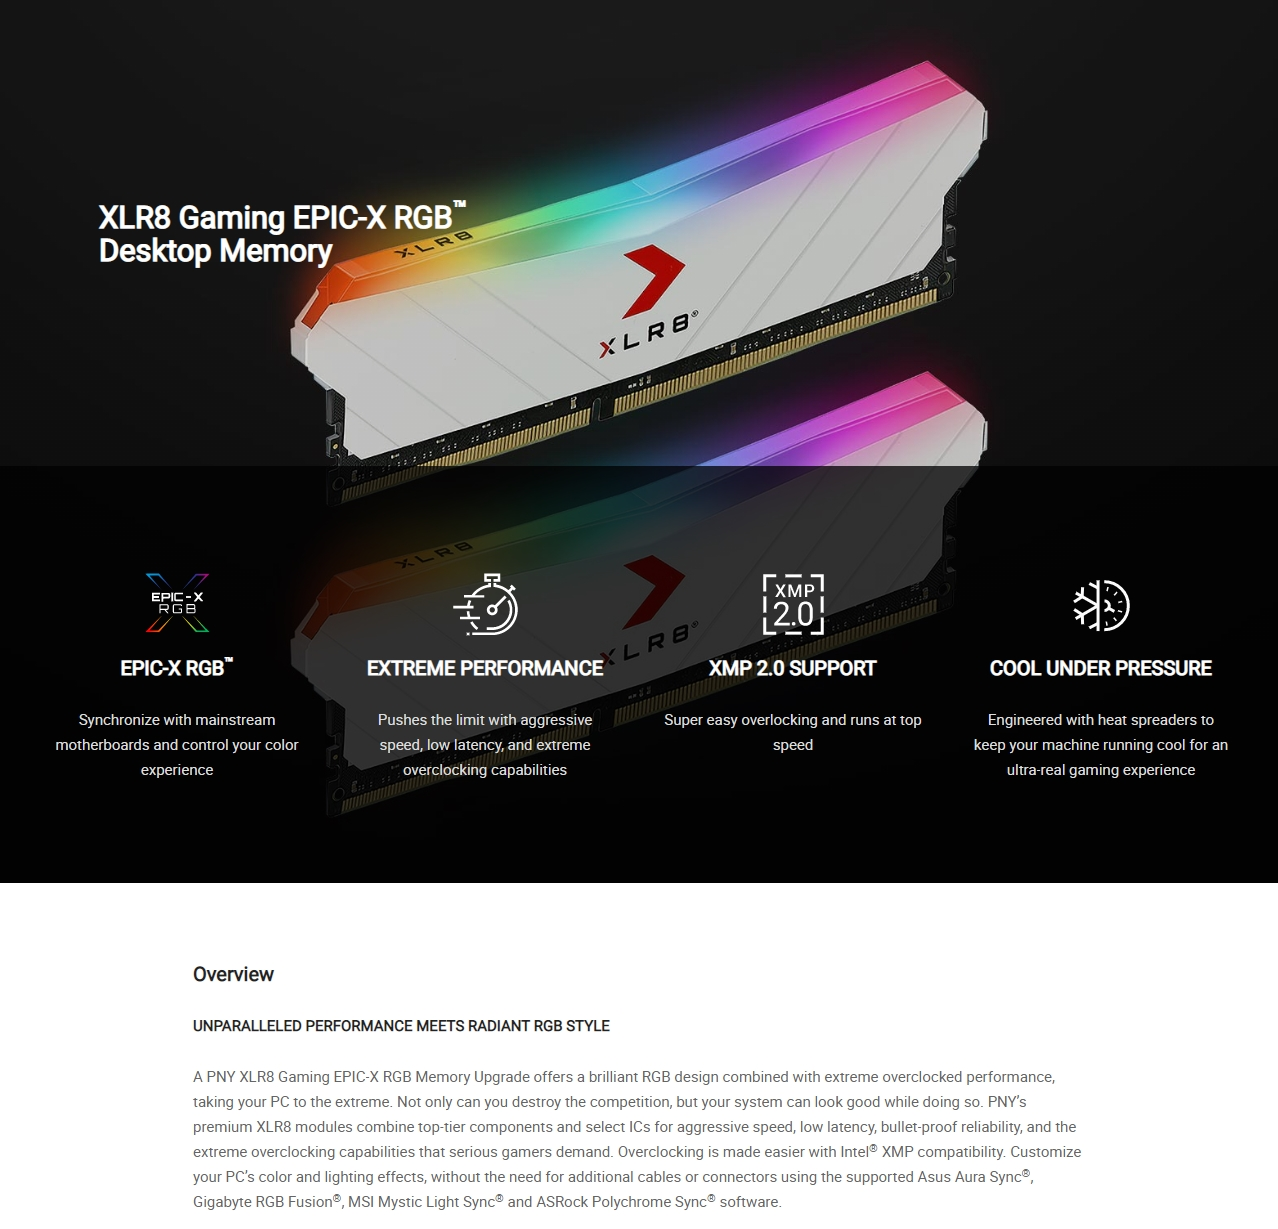 A large marketing image providing additional information about the product PNY XLR8 16GB (2x8GB) EPIC-X RGB Gaming DDR4 C16 3200Mhz - White Edition - Additional alt info not provided